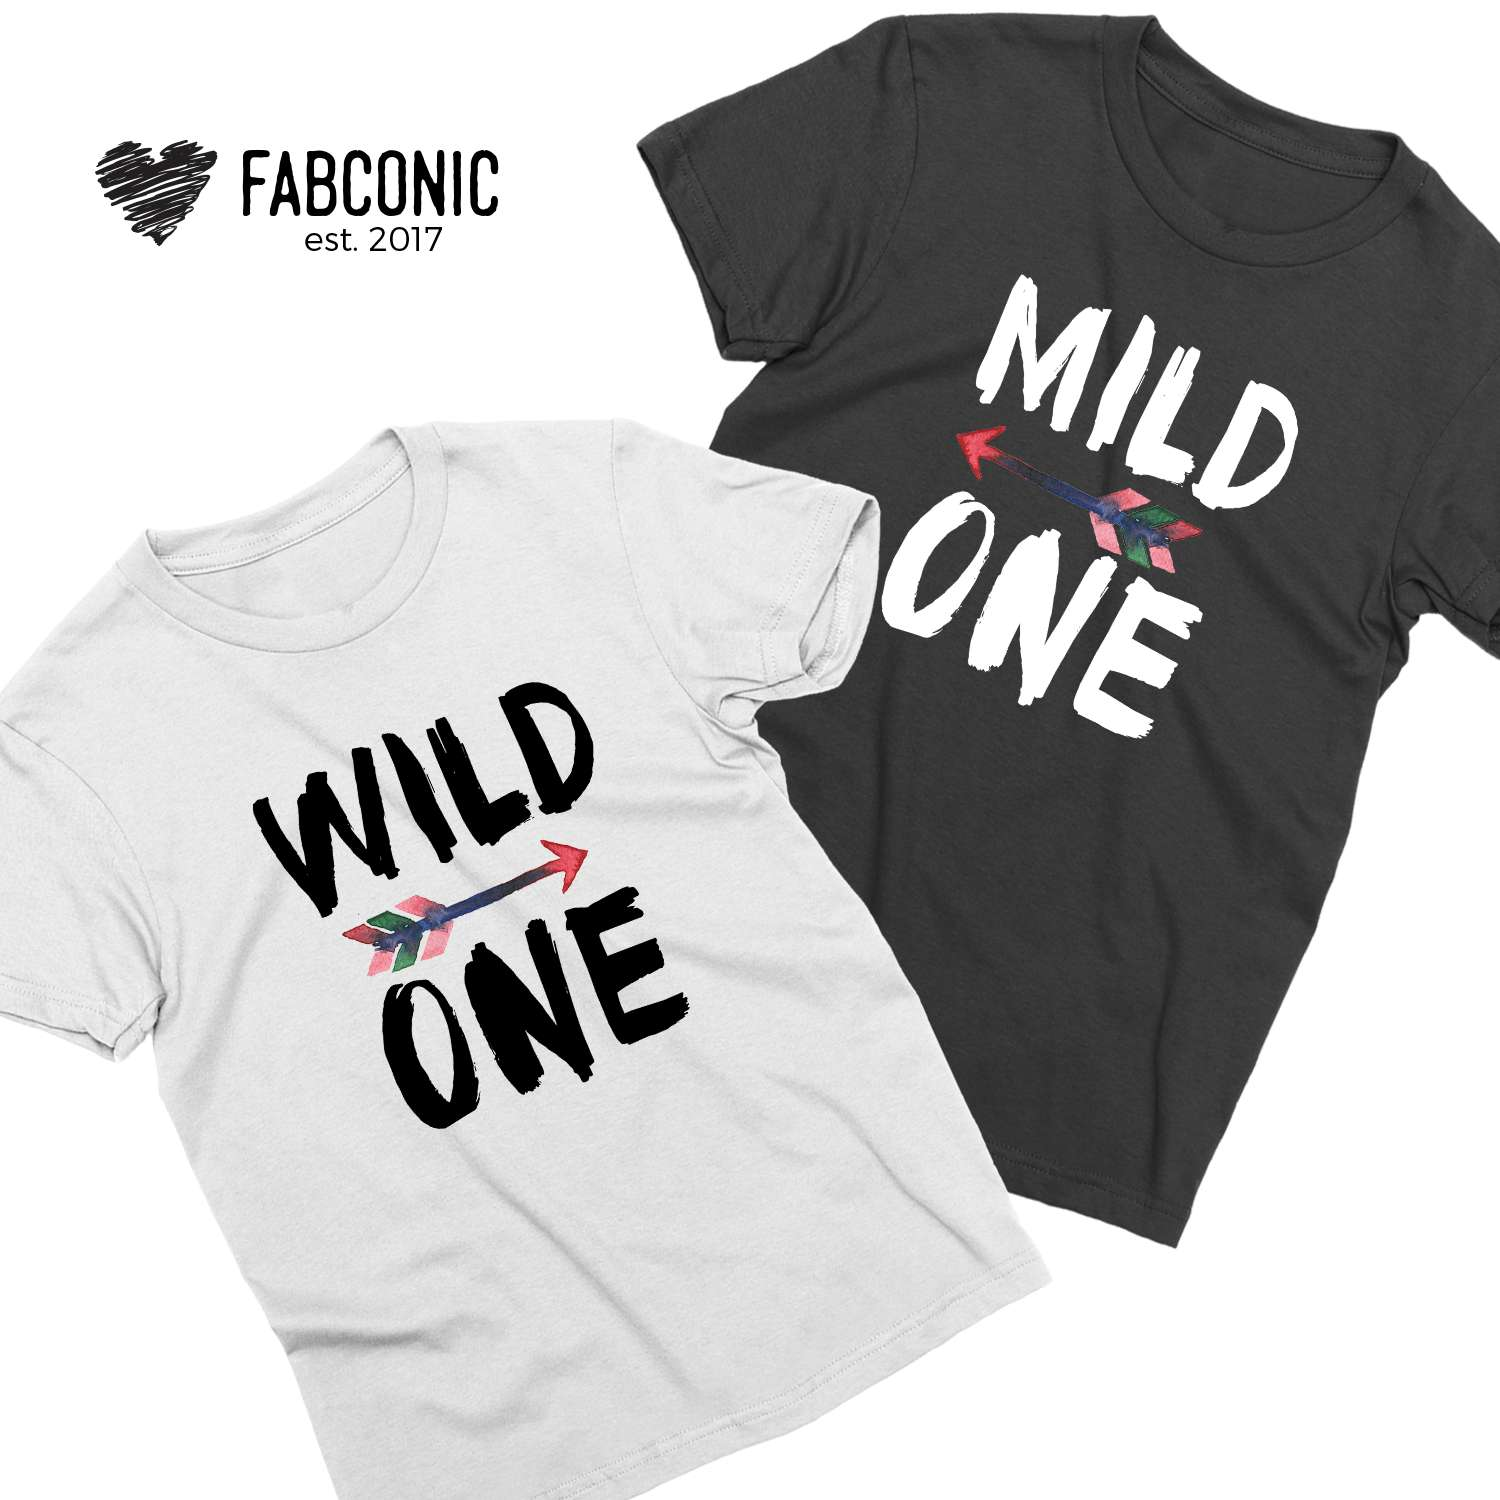 0f948ad9 Sister Gift Idea, Mild One Wild One, Matching Best Friends Shirts